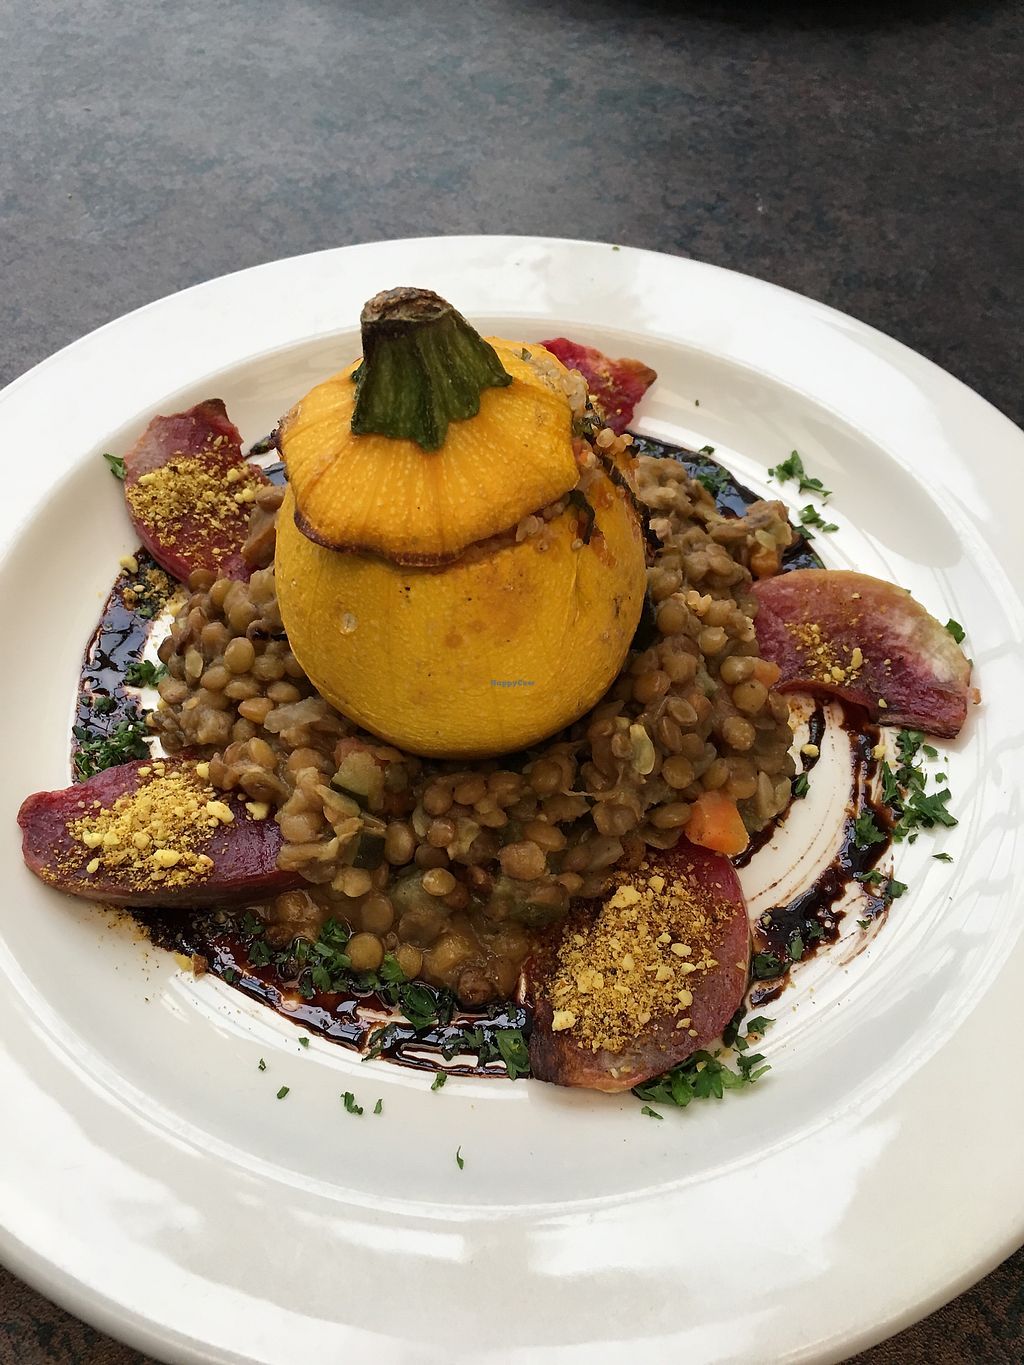 """Photo of Olive Bistro & Lounge  by <a href=""""/members/profile/beckthebomb"""">beckthebomb</a> <br/>Chefs Special Farmers Plate <br/> August 15, 2017  - <a href='/contact/abuse/image/94980/292796'>Report</a>"""